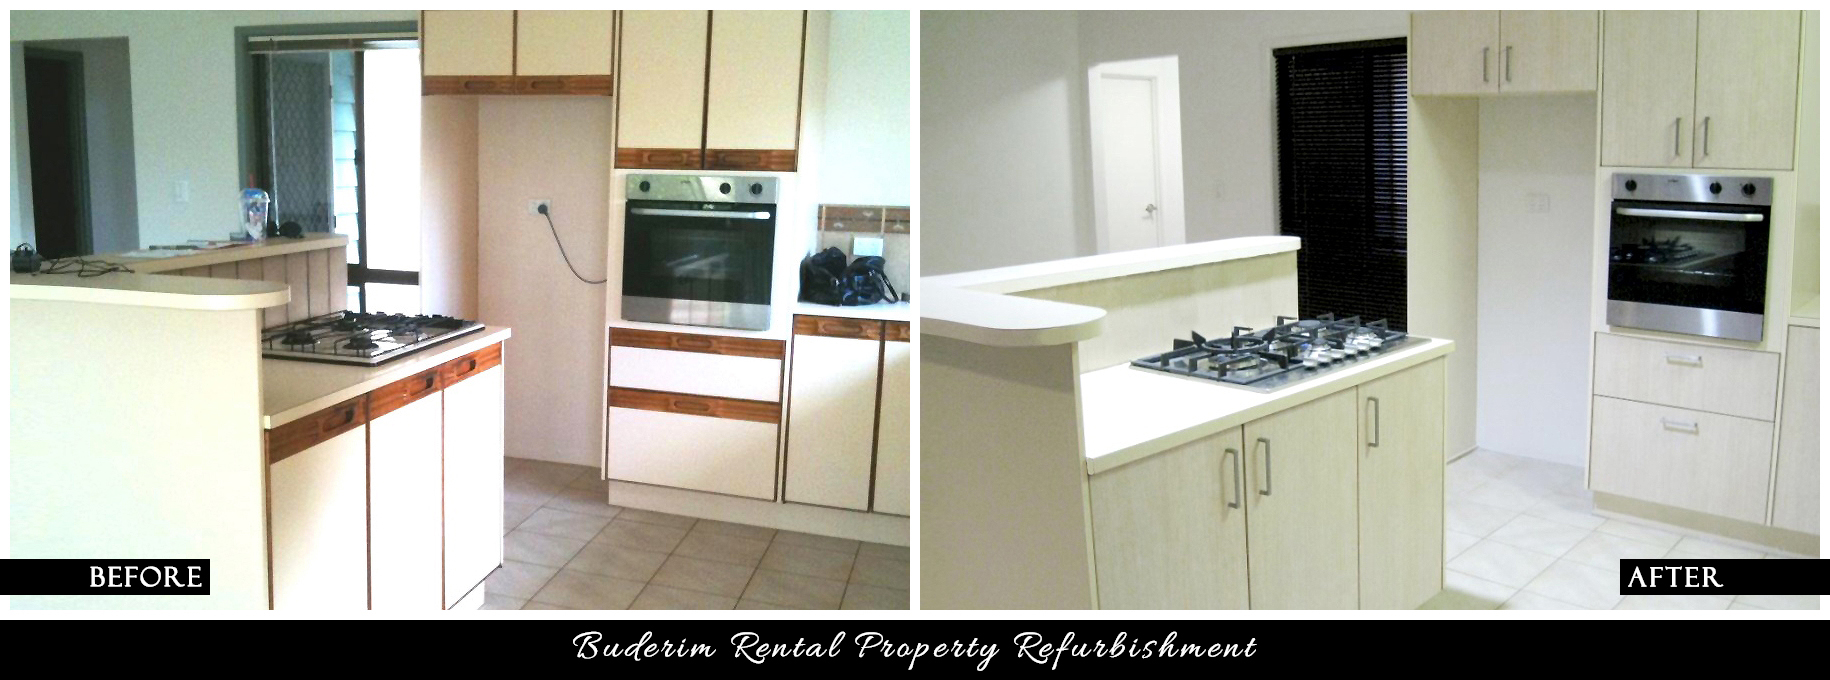 CANDY & CO. - BUDERIM RENTAL PROPERTY Before & After - Kitchen